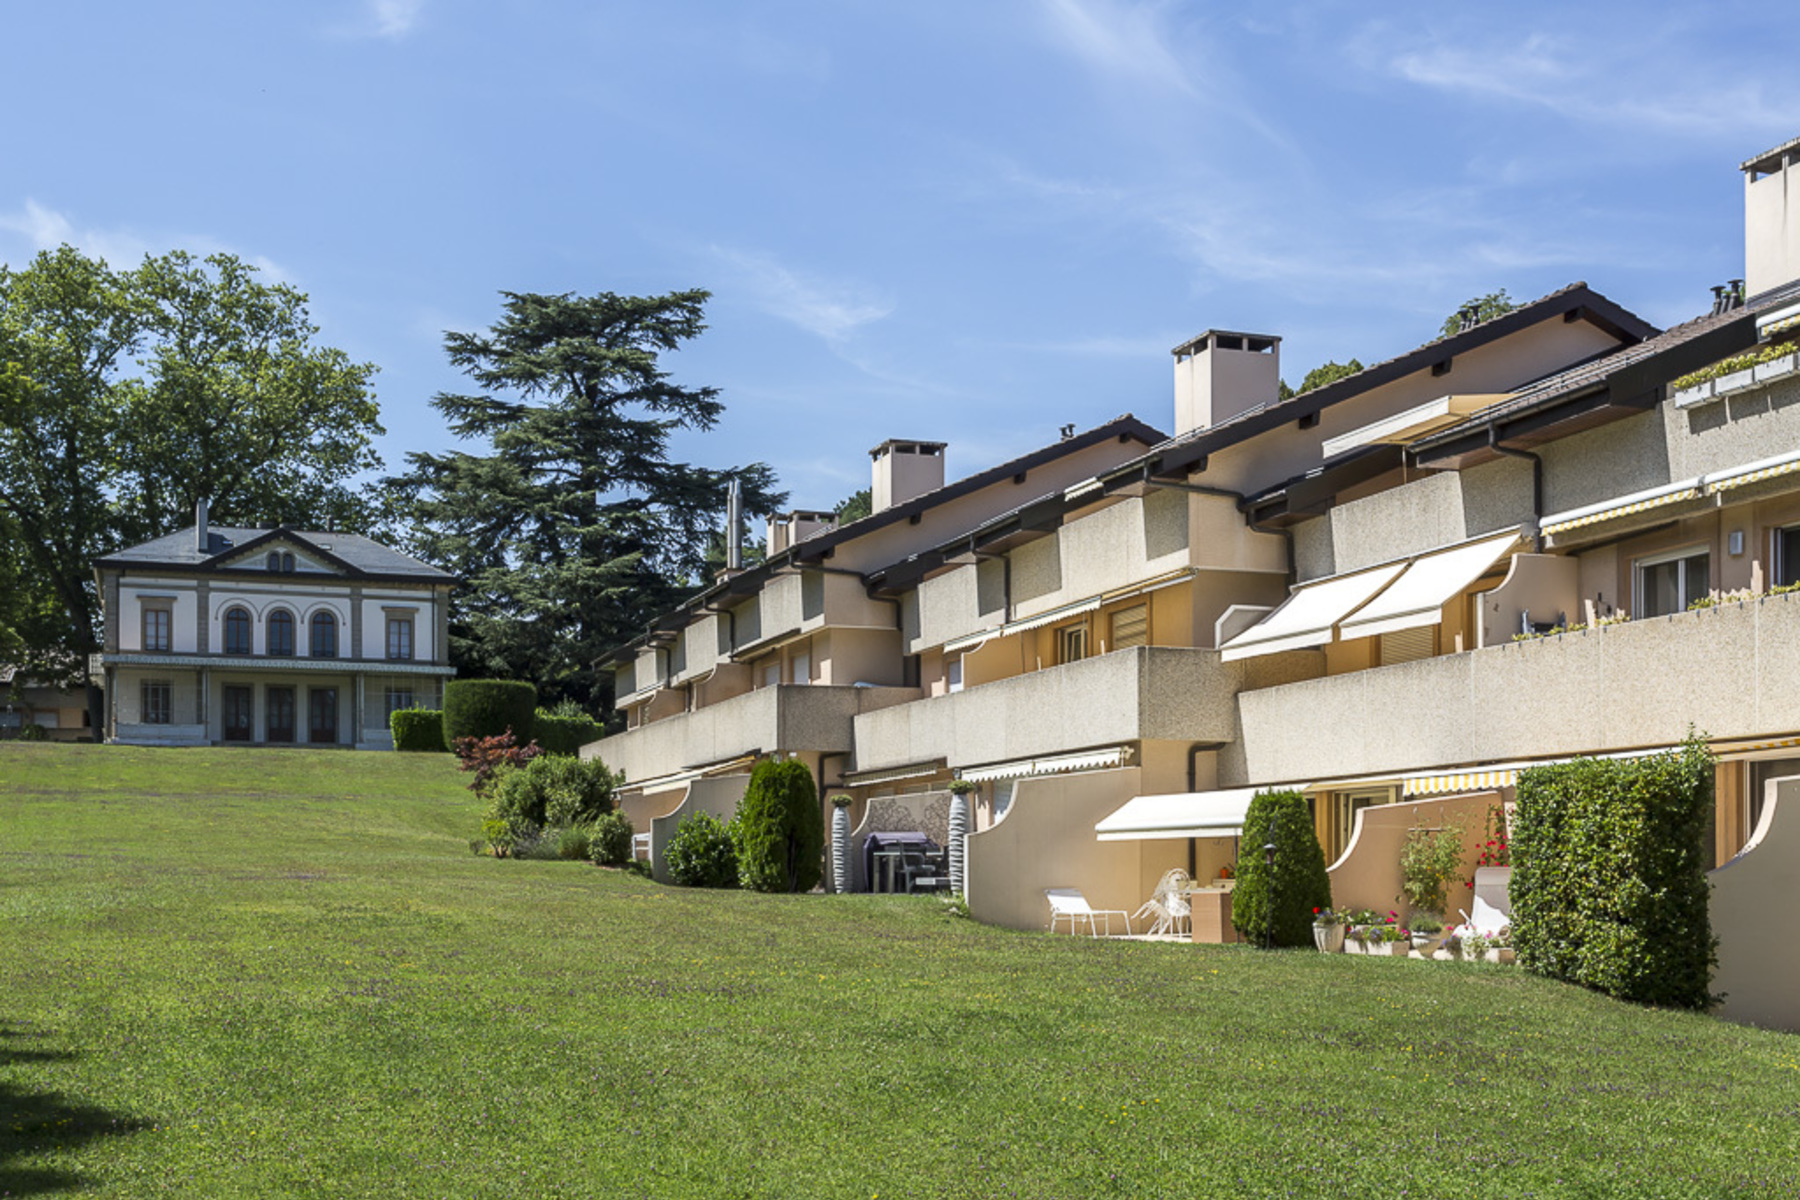 Apartment for Sale at Beautiful loft apartment in leafy surroundings Chêne-Bougeries Chene-Bougeries, Geneva 1224 Switzerland